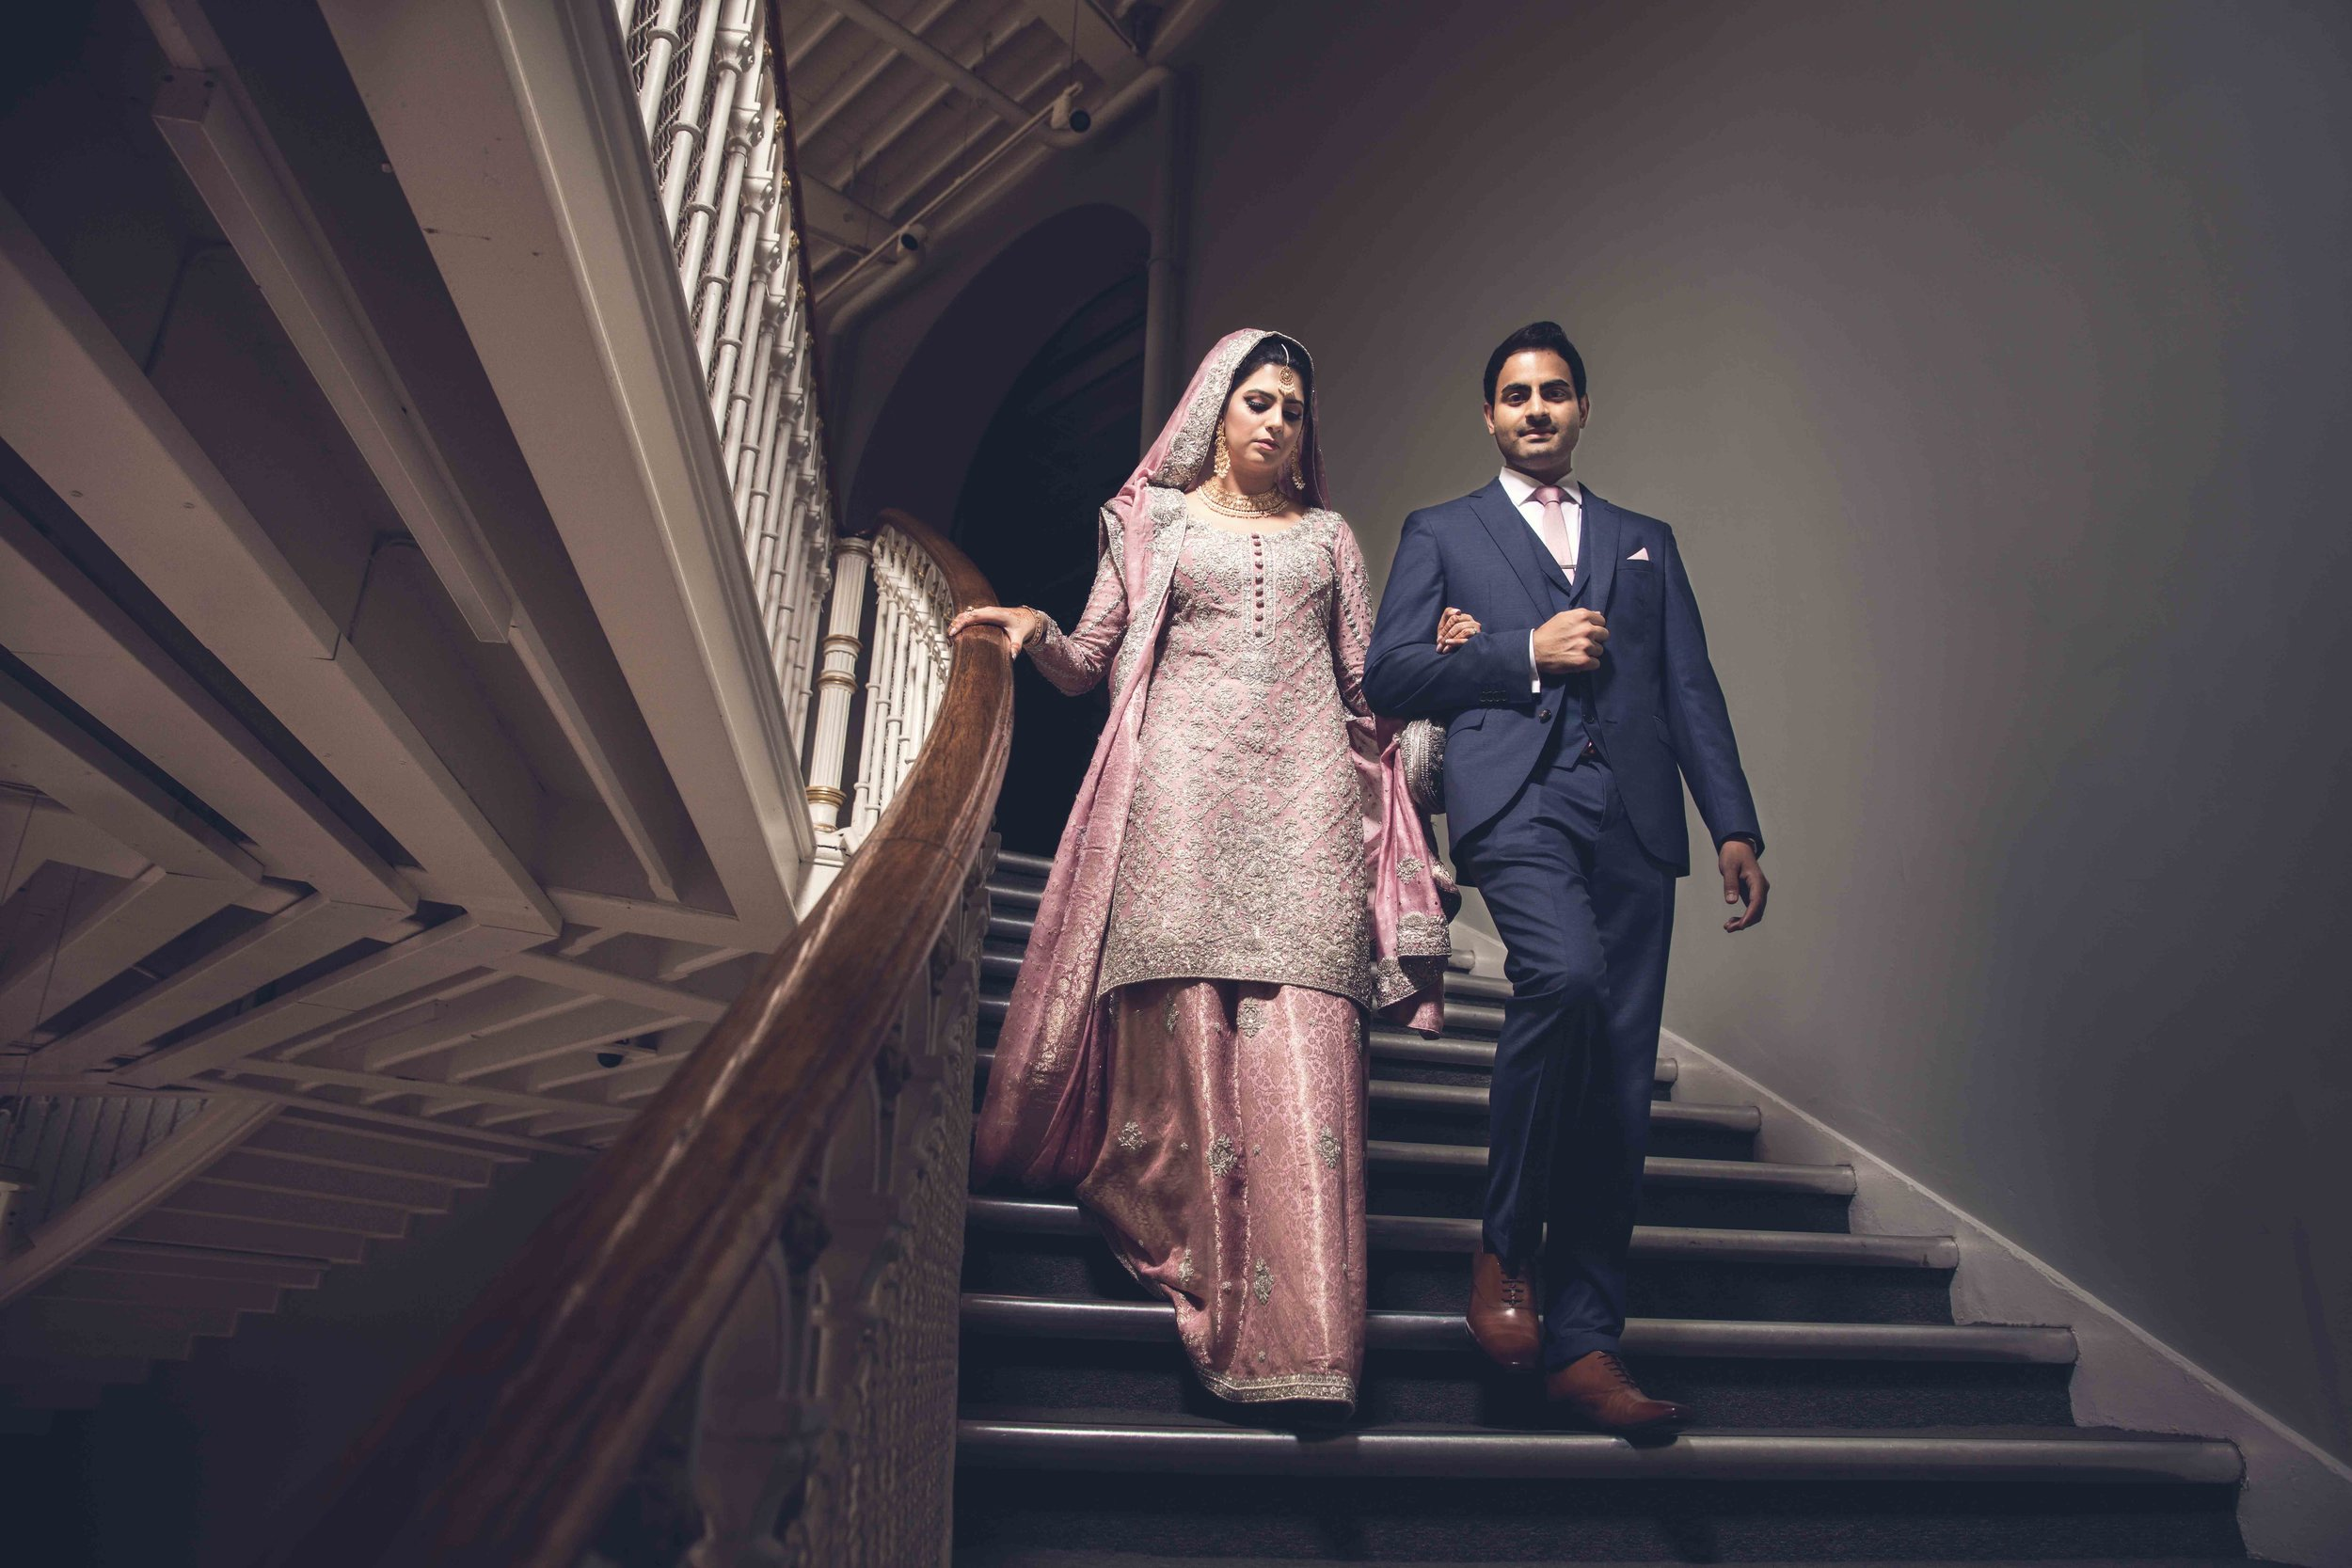 Asian Wedding Photographer Opu Sultan Photography Scotland Edinburgh Glasgow London Manchester Liverpool Birmingham Wedding Photos Salman & Maha Blog Photos-19.jpg